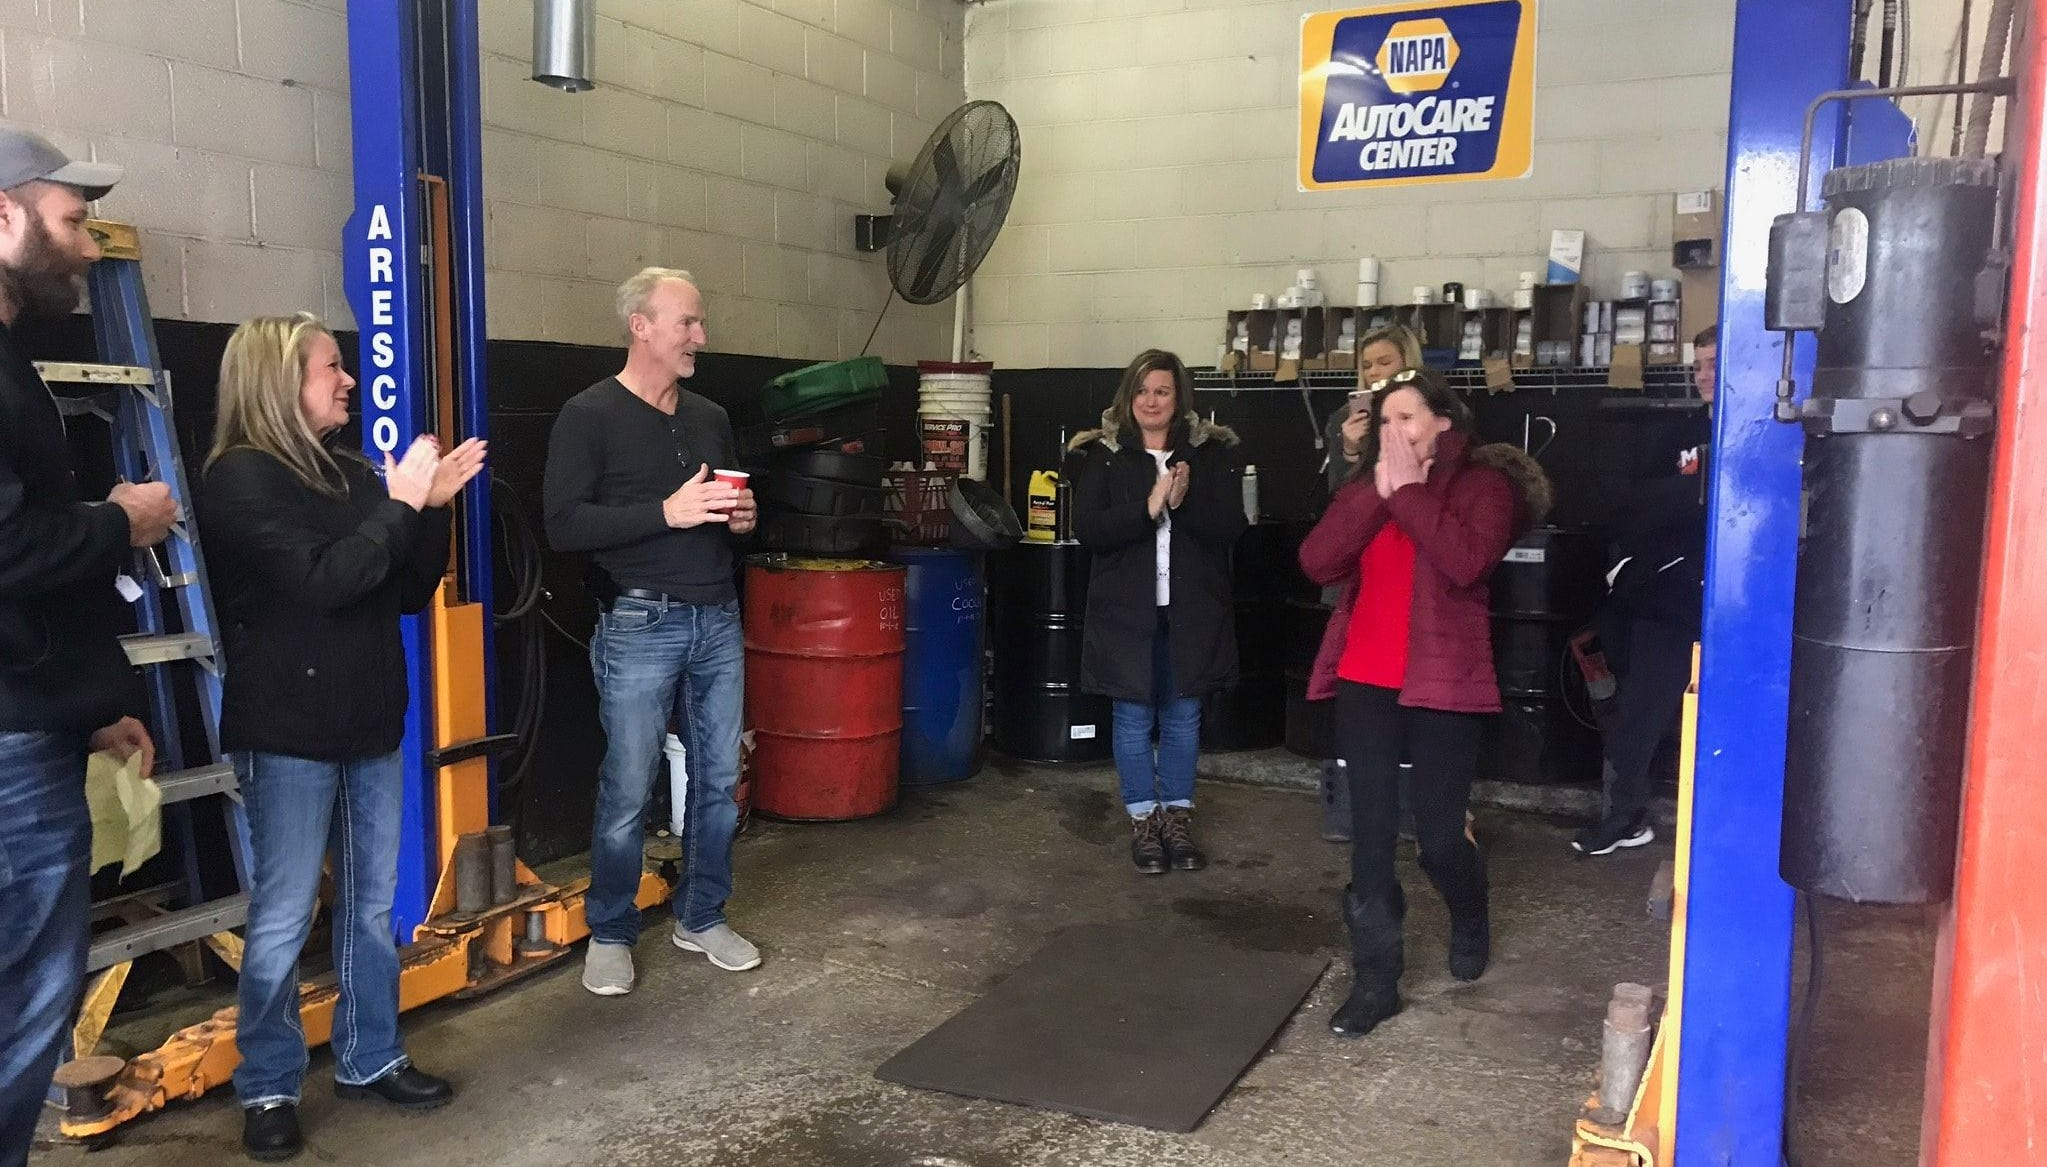 Milford resident Tammy Stockbridge (far left) reacts to being given a car through a program sponsored by local businesses.